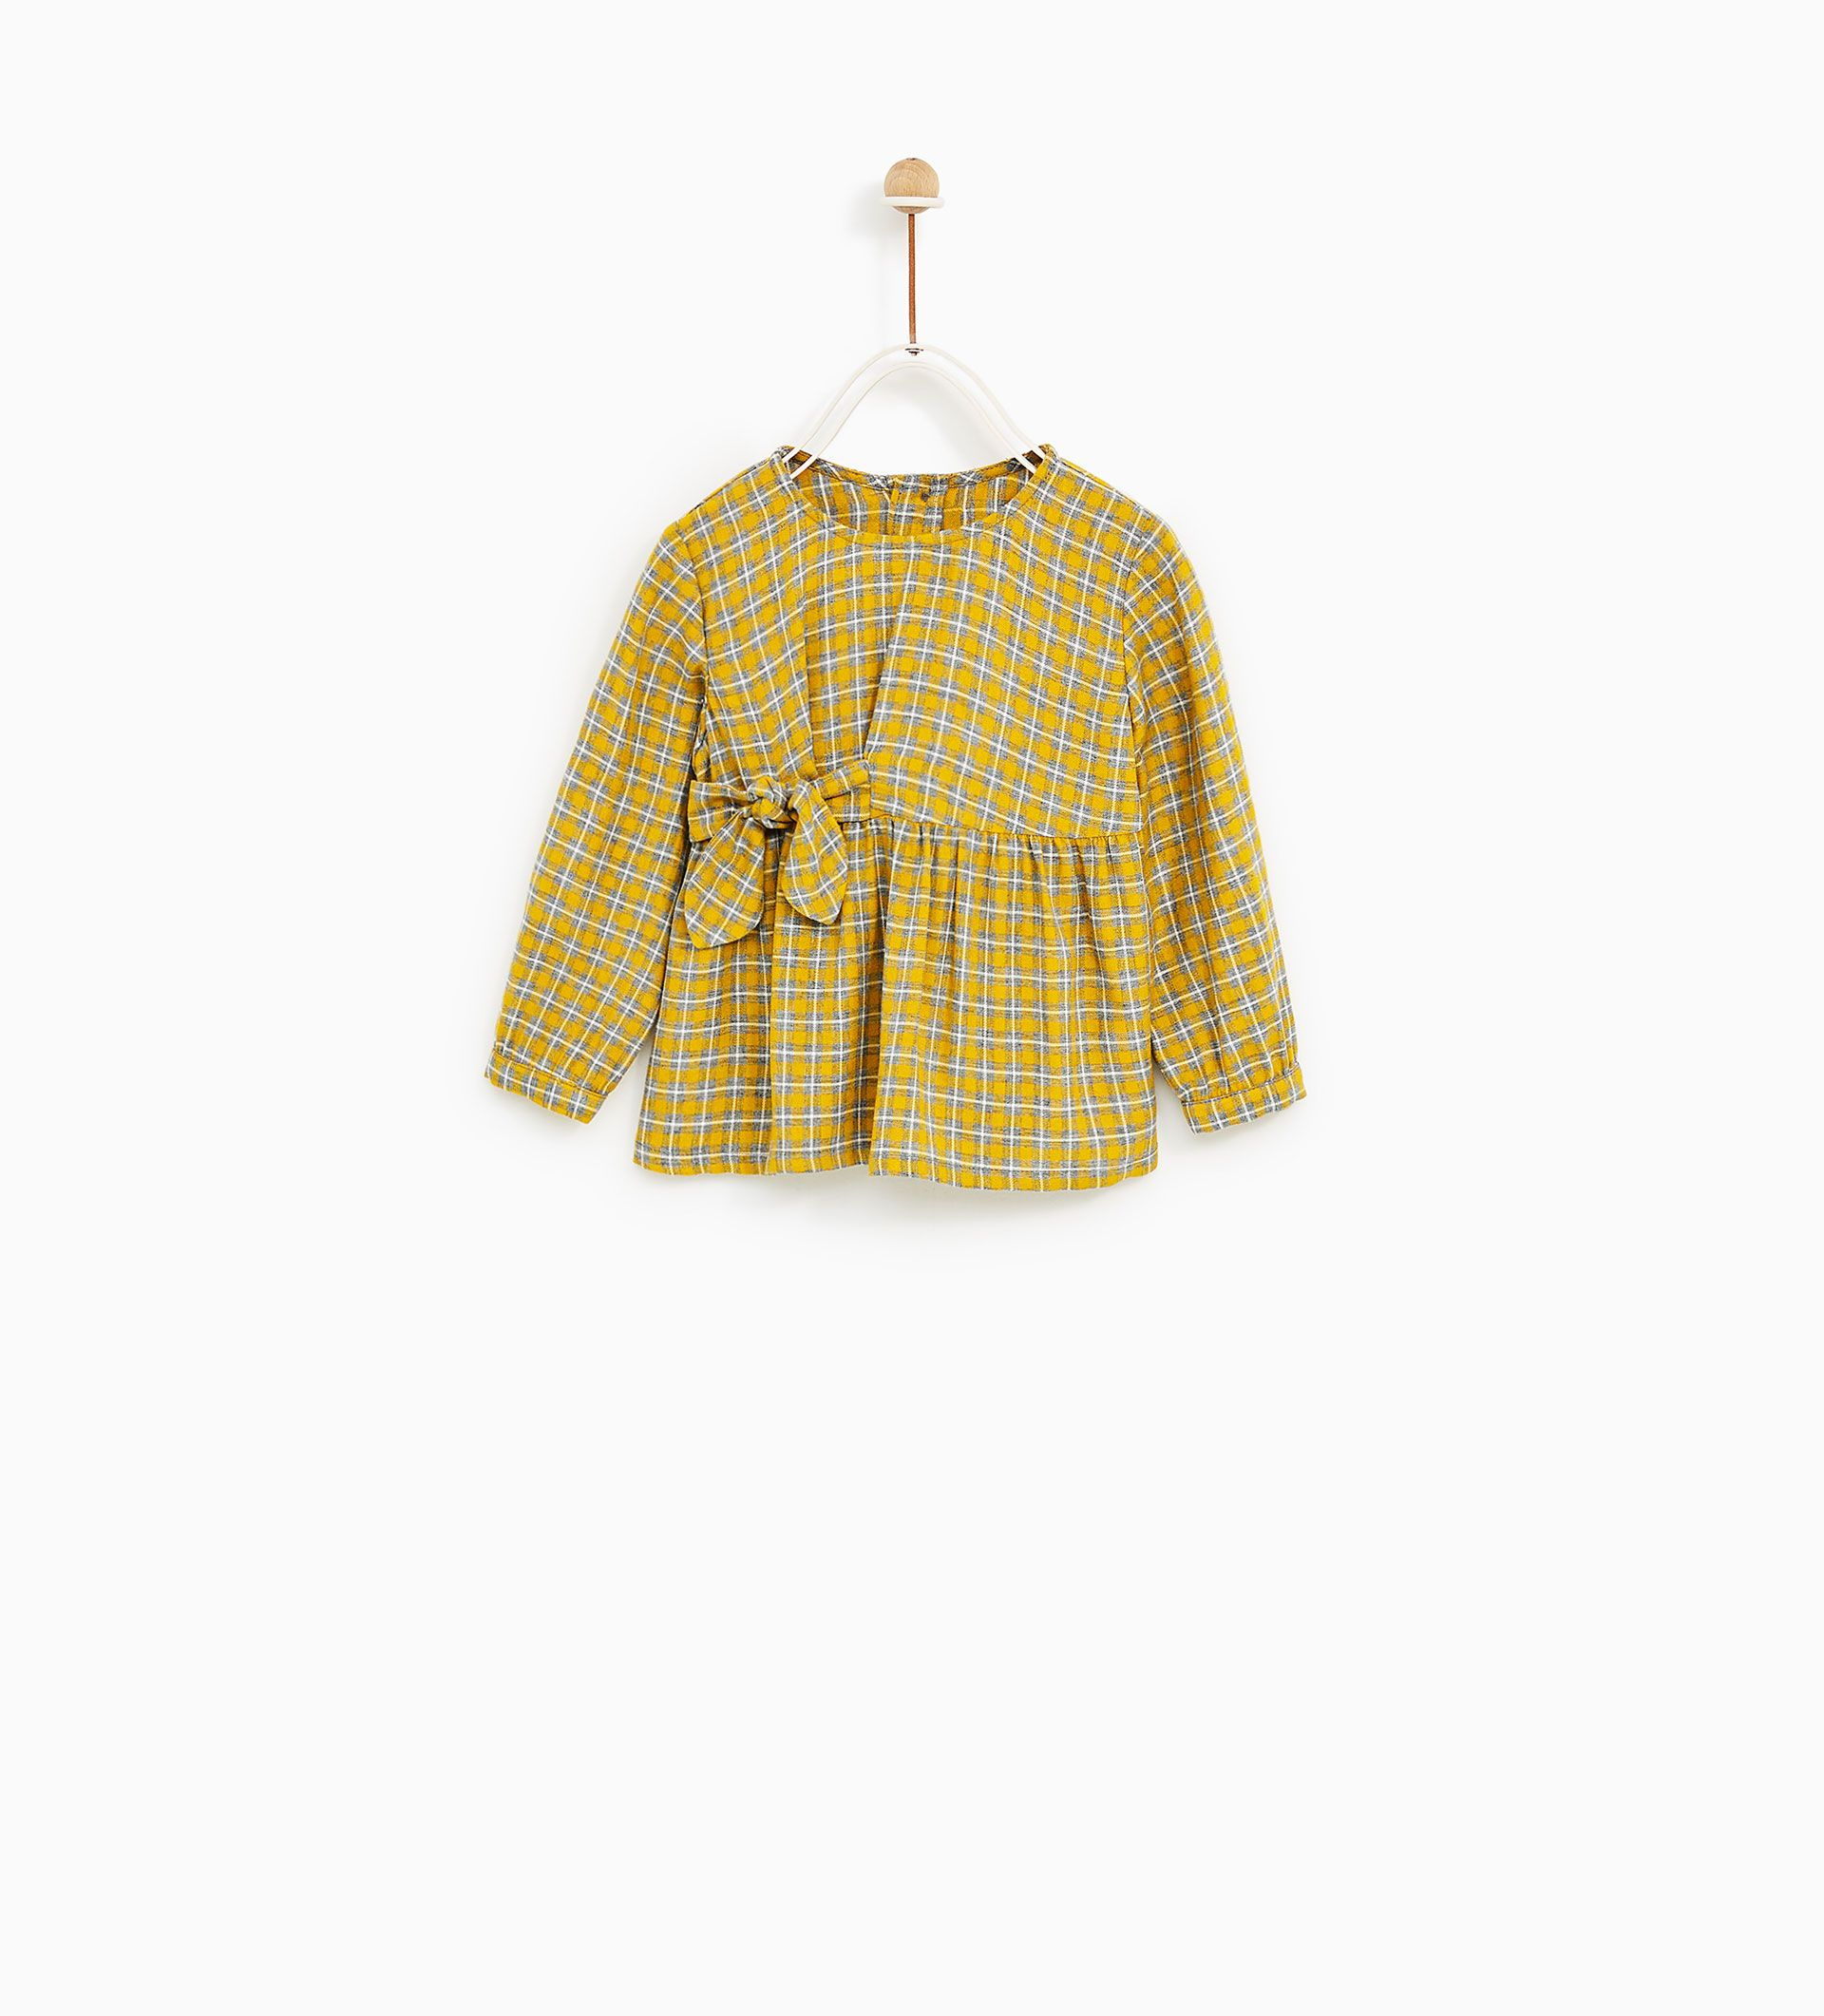 24a08129 Image 1 of CHECK KNOT SHIRT from Zara | Girl fashion | Knotted shirt ...